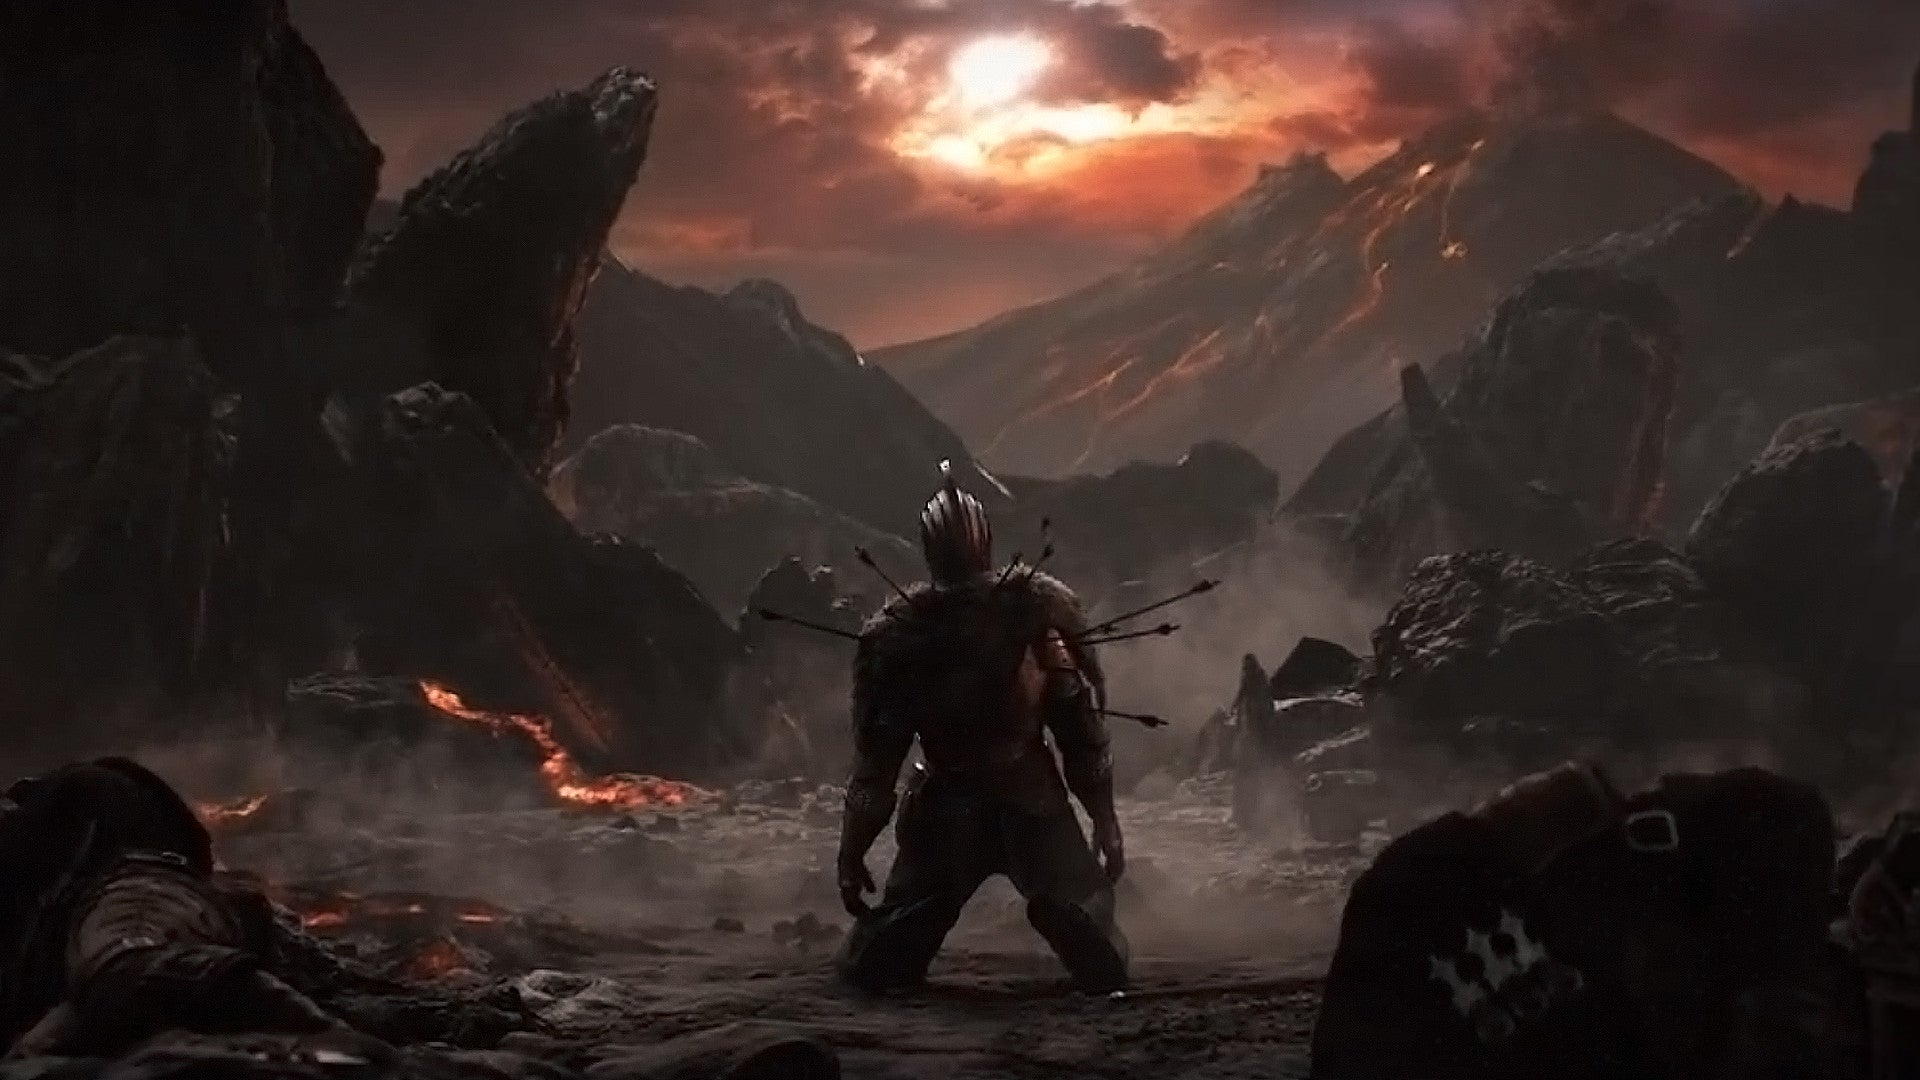 Dark Souls Fan Editing Full-Length Movies Telling Each Game's Confusing Story